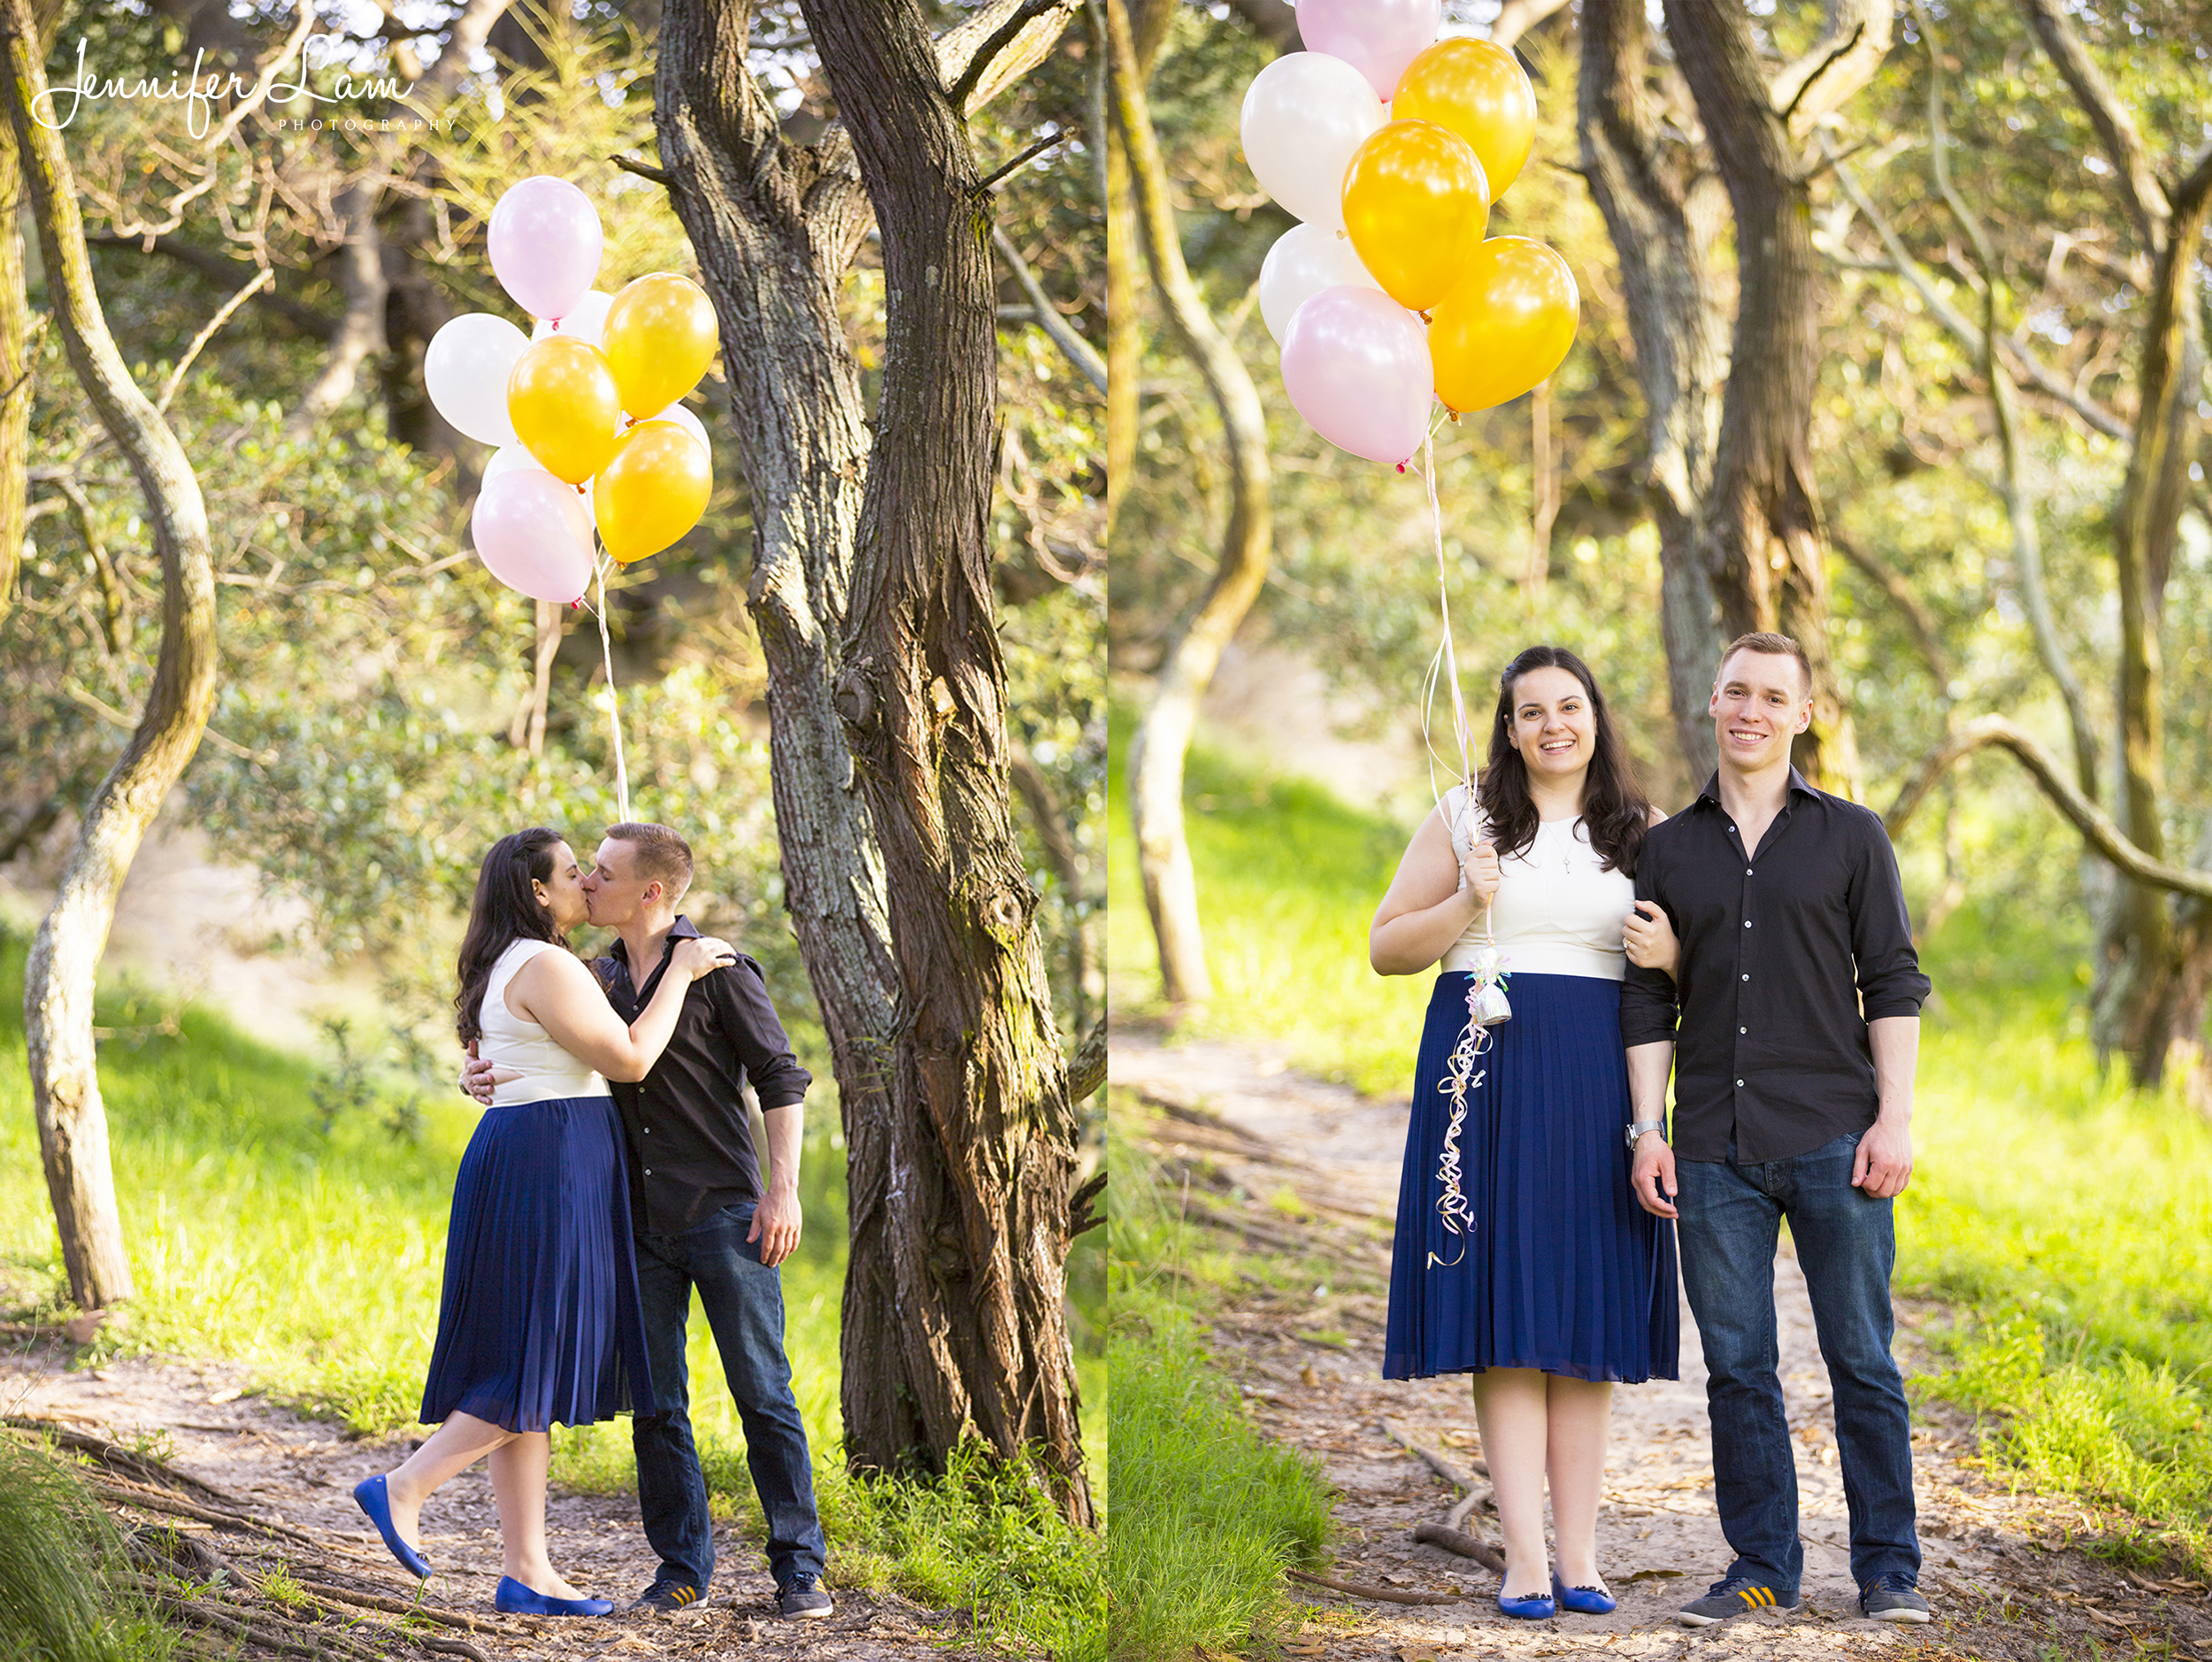 Engagement Session - Sydney Wedding Photographer - Jennifer Lam Photography (7).jpg